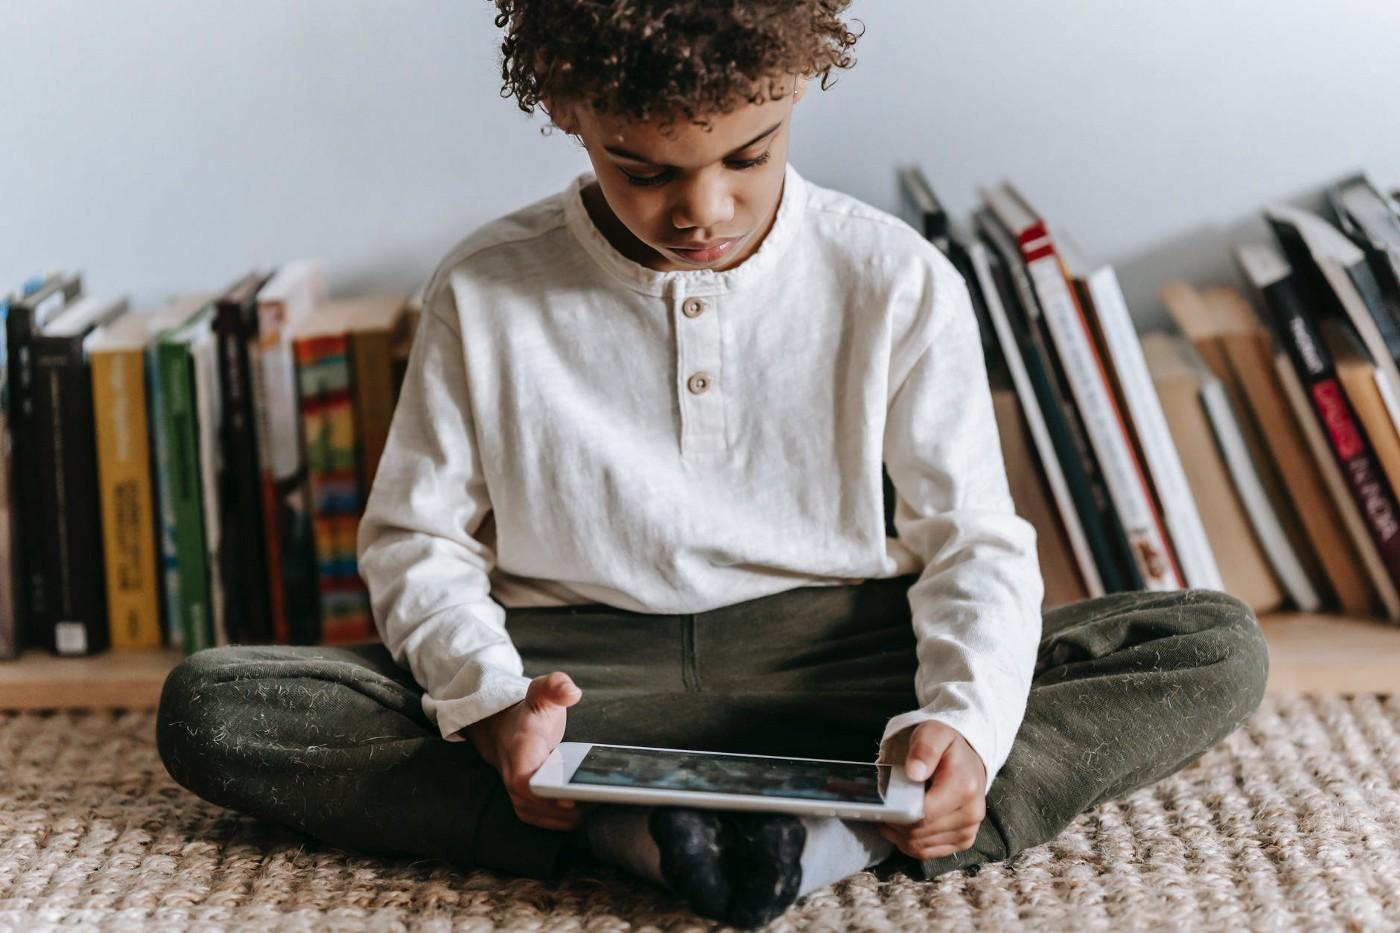 Child sitting in front of a row of books reading on a tablet